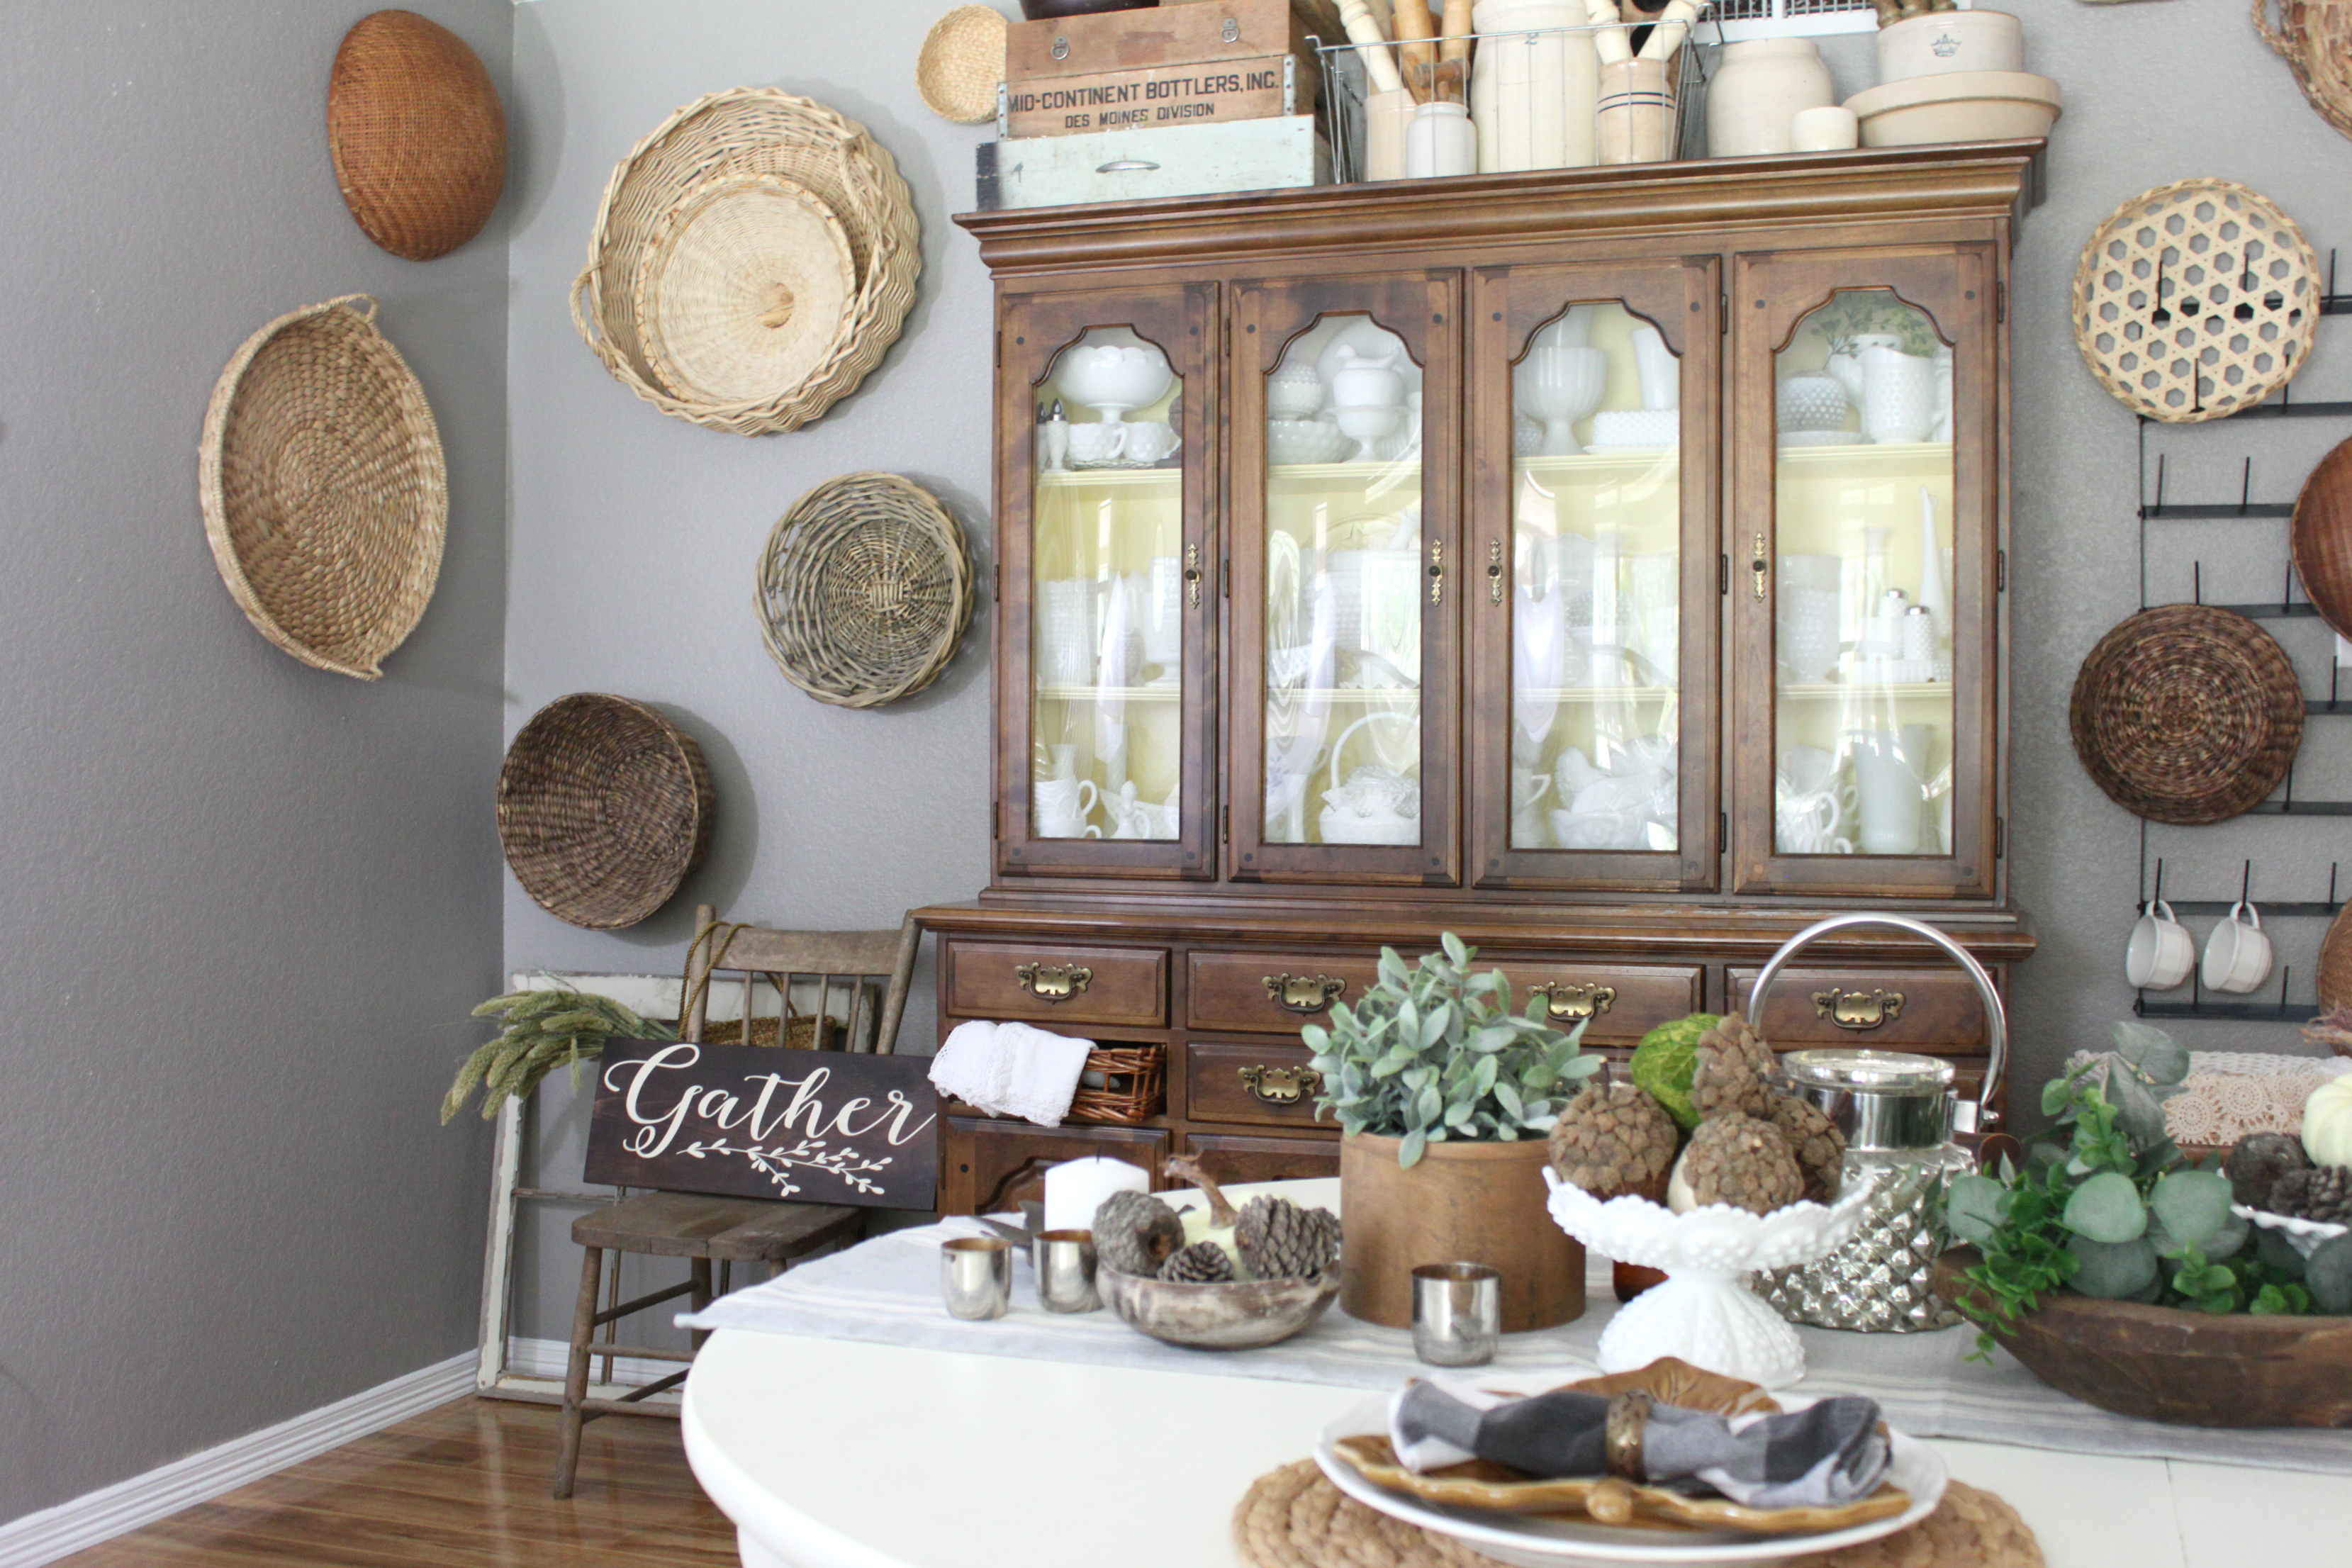 fall-dining-room-china-cabinet-milkglass-basket-wall-gather